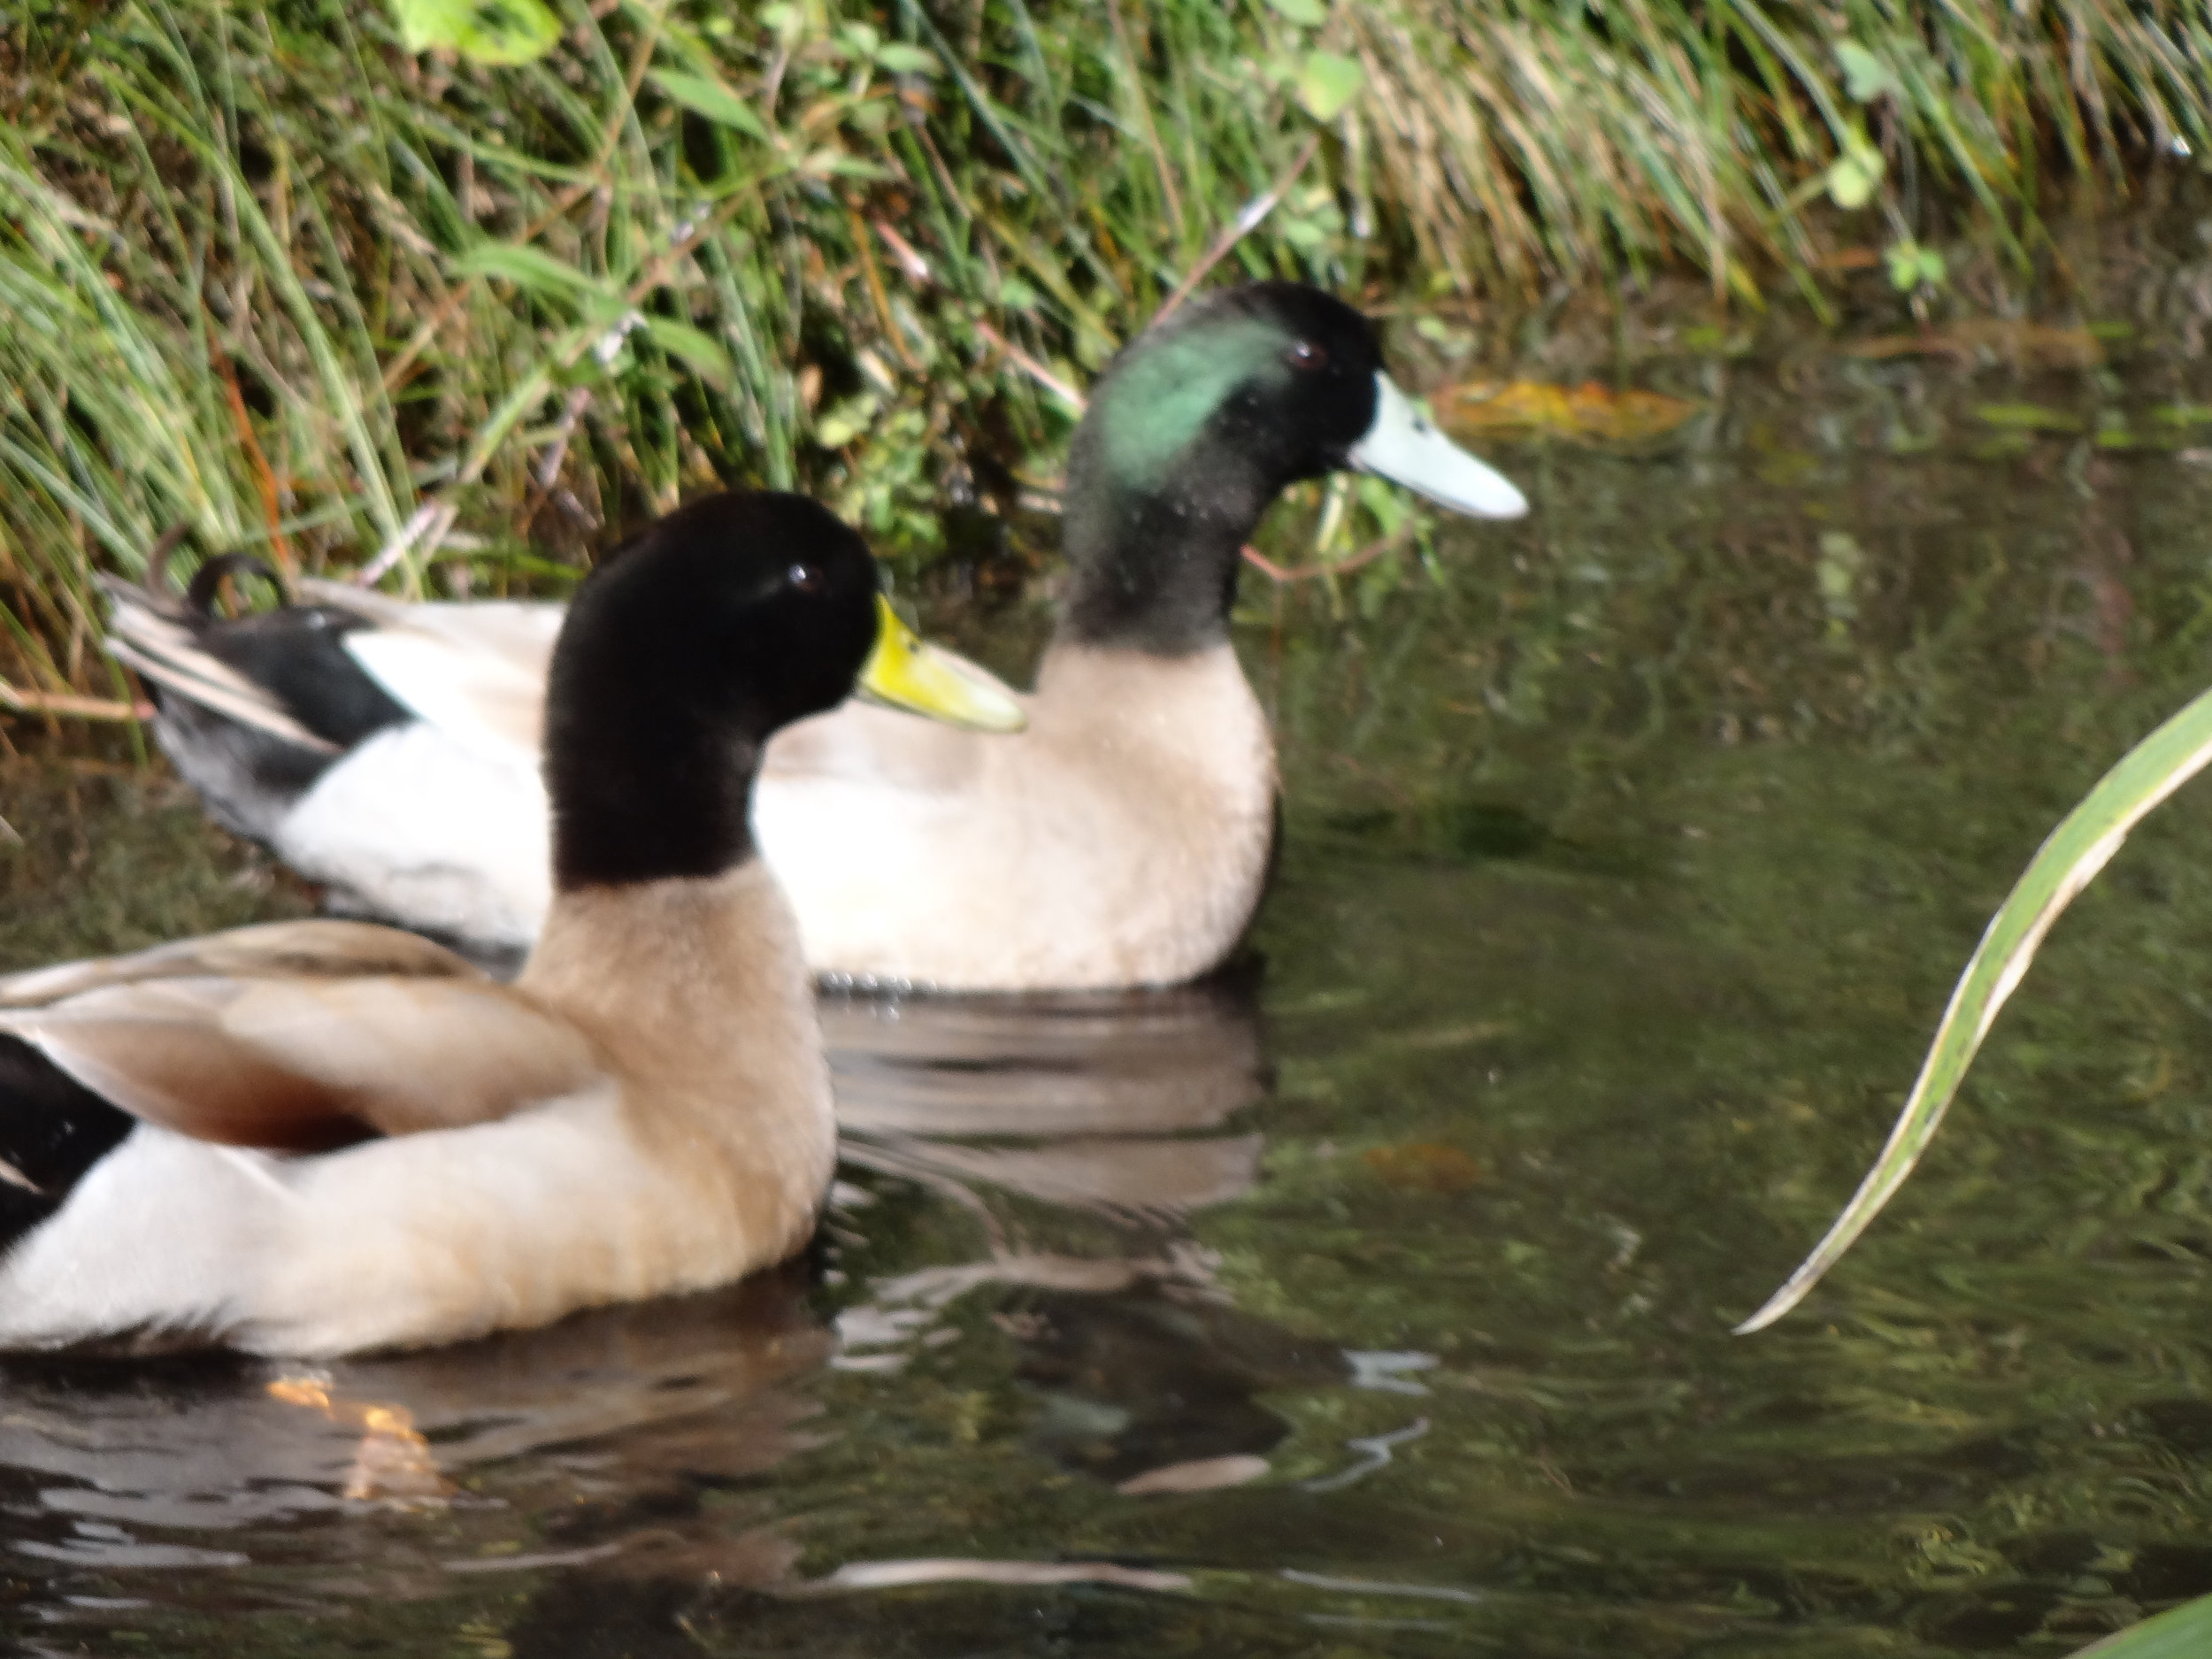 Children love seeing Lily's ducks at Tibbit's Garden.  We started to take sandwich left overs to feed the ducks.